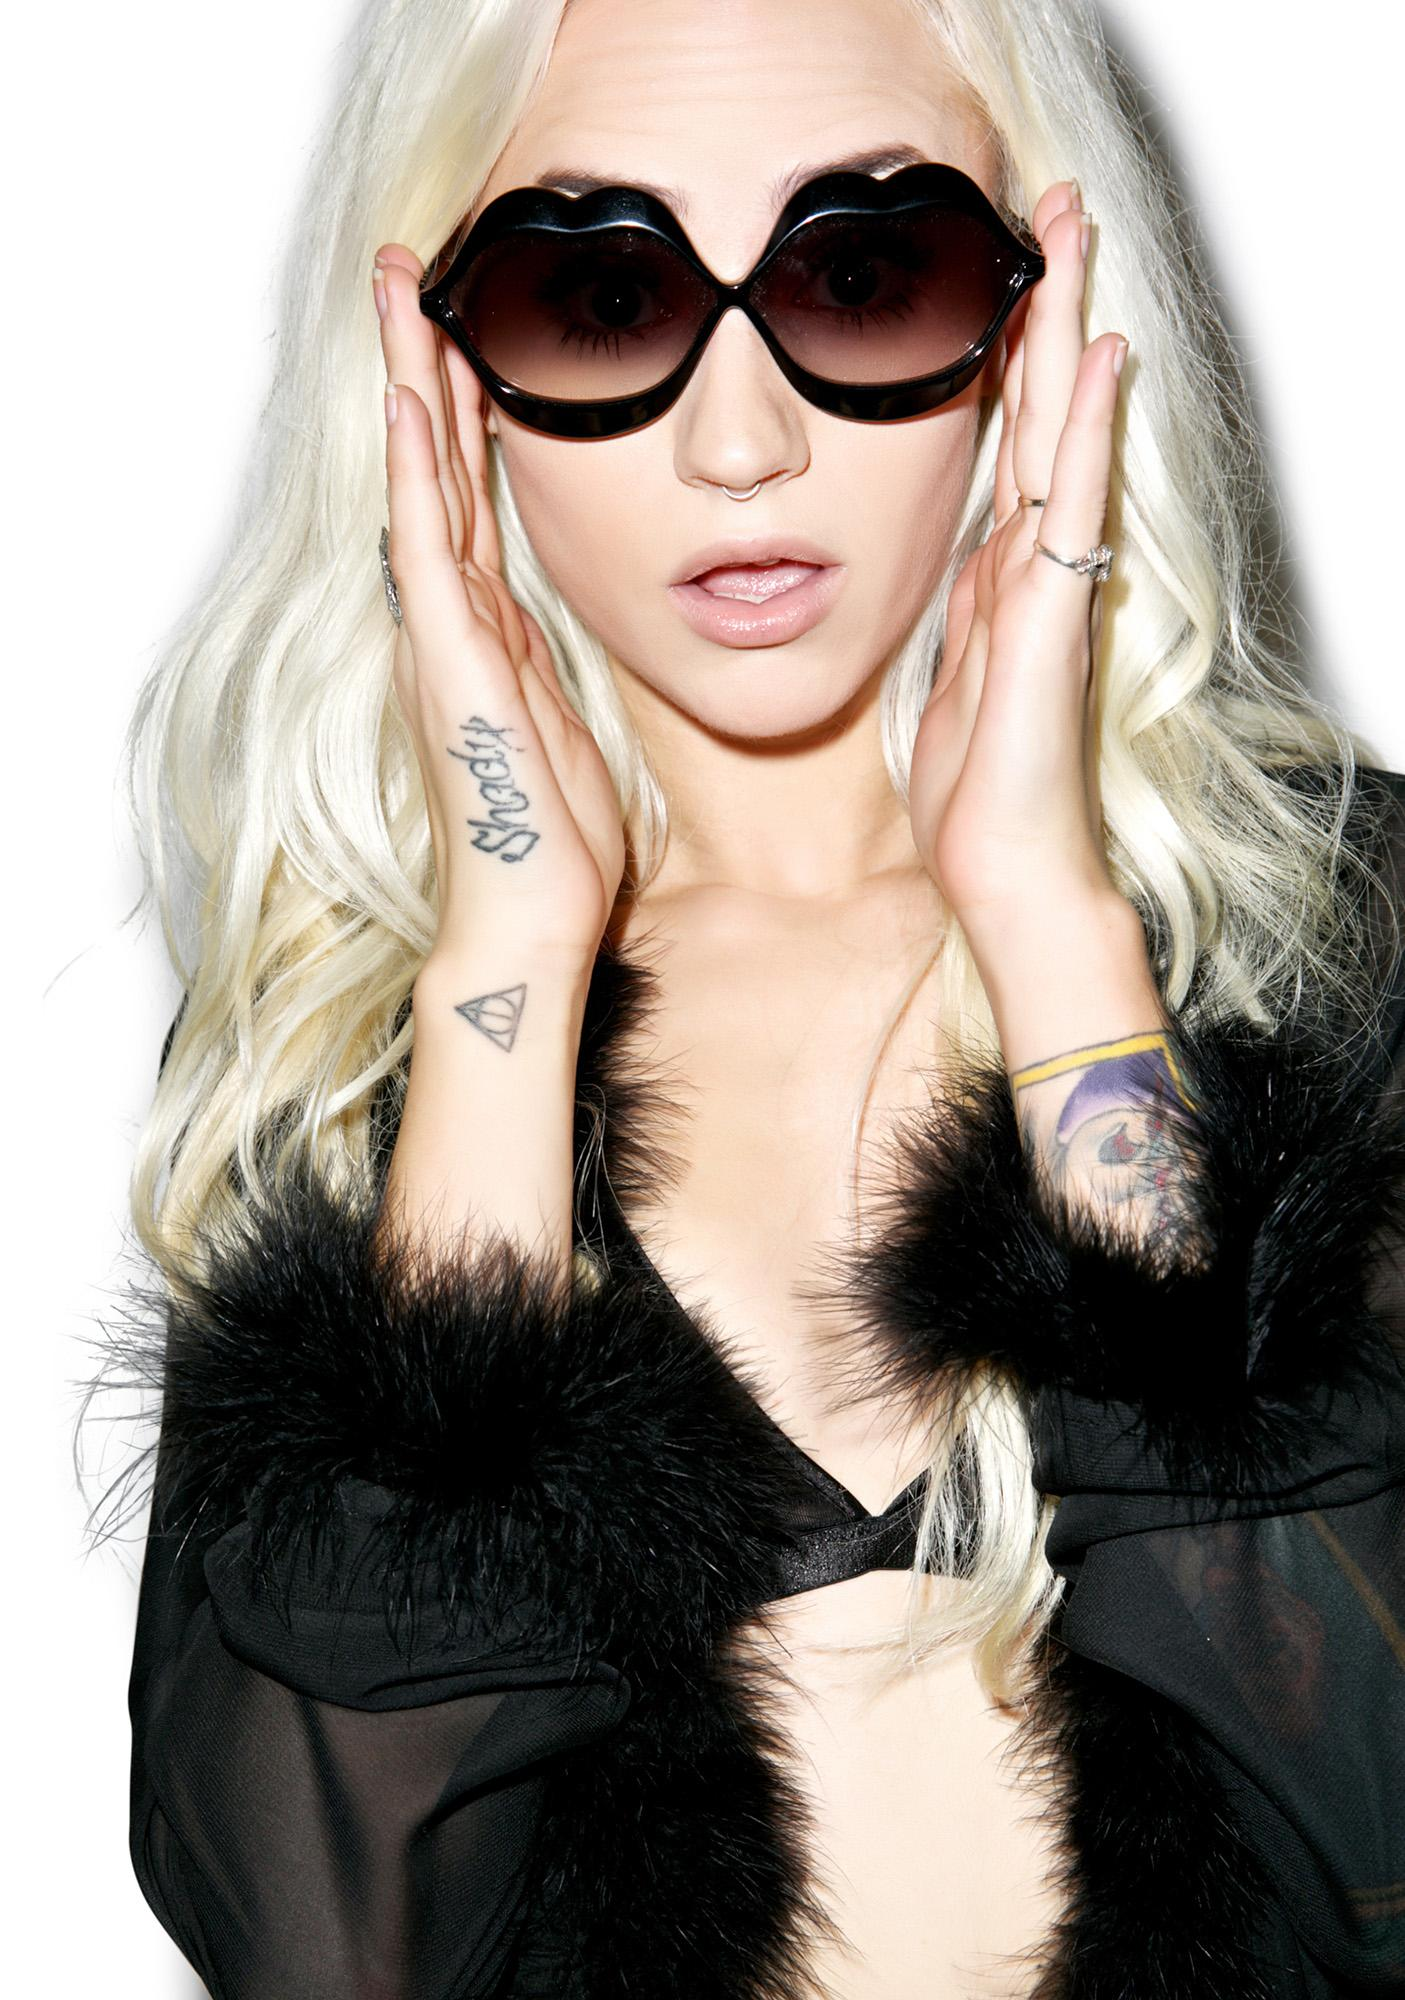 Wildfox Couture Black Lip Service Sunglasses